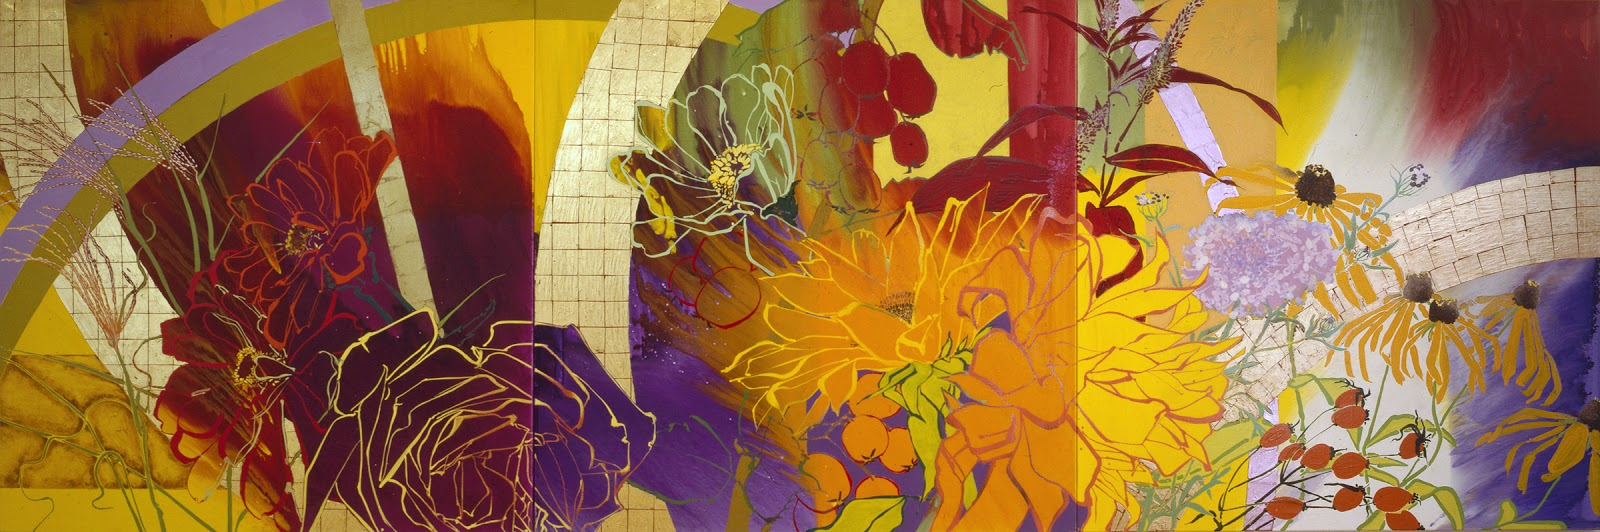 "Robert Kushner, ""Indian Summer – Homage to Bonnard"" (2000), oil, acrylic, and mixed media on canvas, 6 x 18 feet, from ""Flora: A Celebration of Flowers in Contemporary Art"""